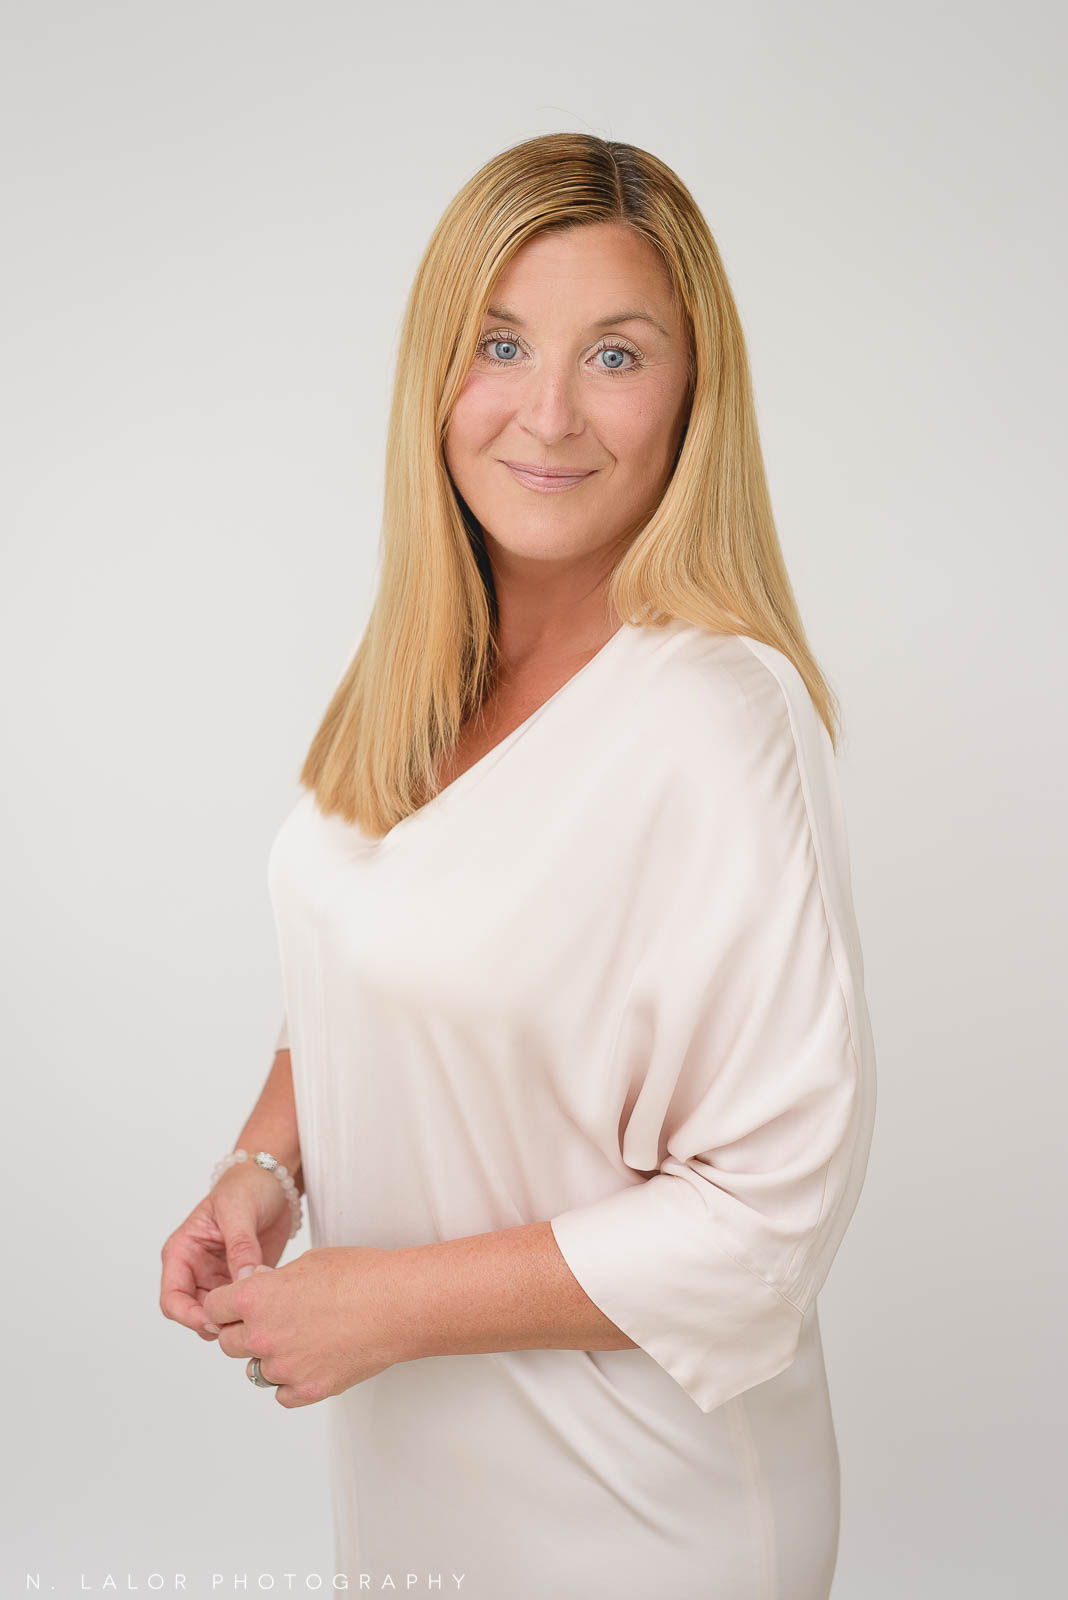 A posed, studio photo of a woman. Her body is tilted away from the camera at an angle while looking straight ahead. She gives off a feminine and friendly vibe. Photo by N. Lalor Photography. Studio in Greenwich, Connecticut.